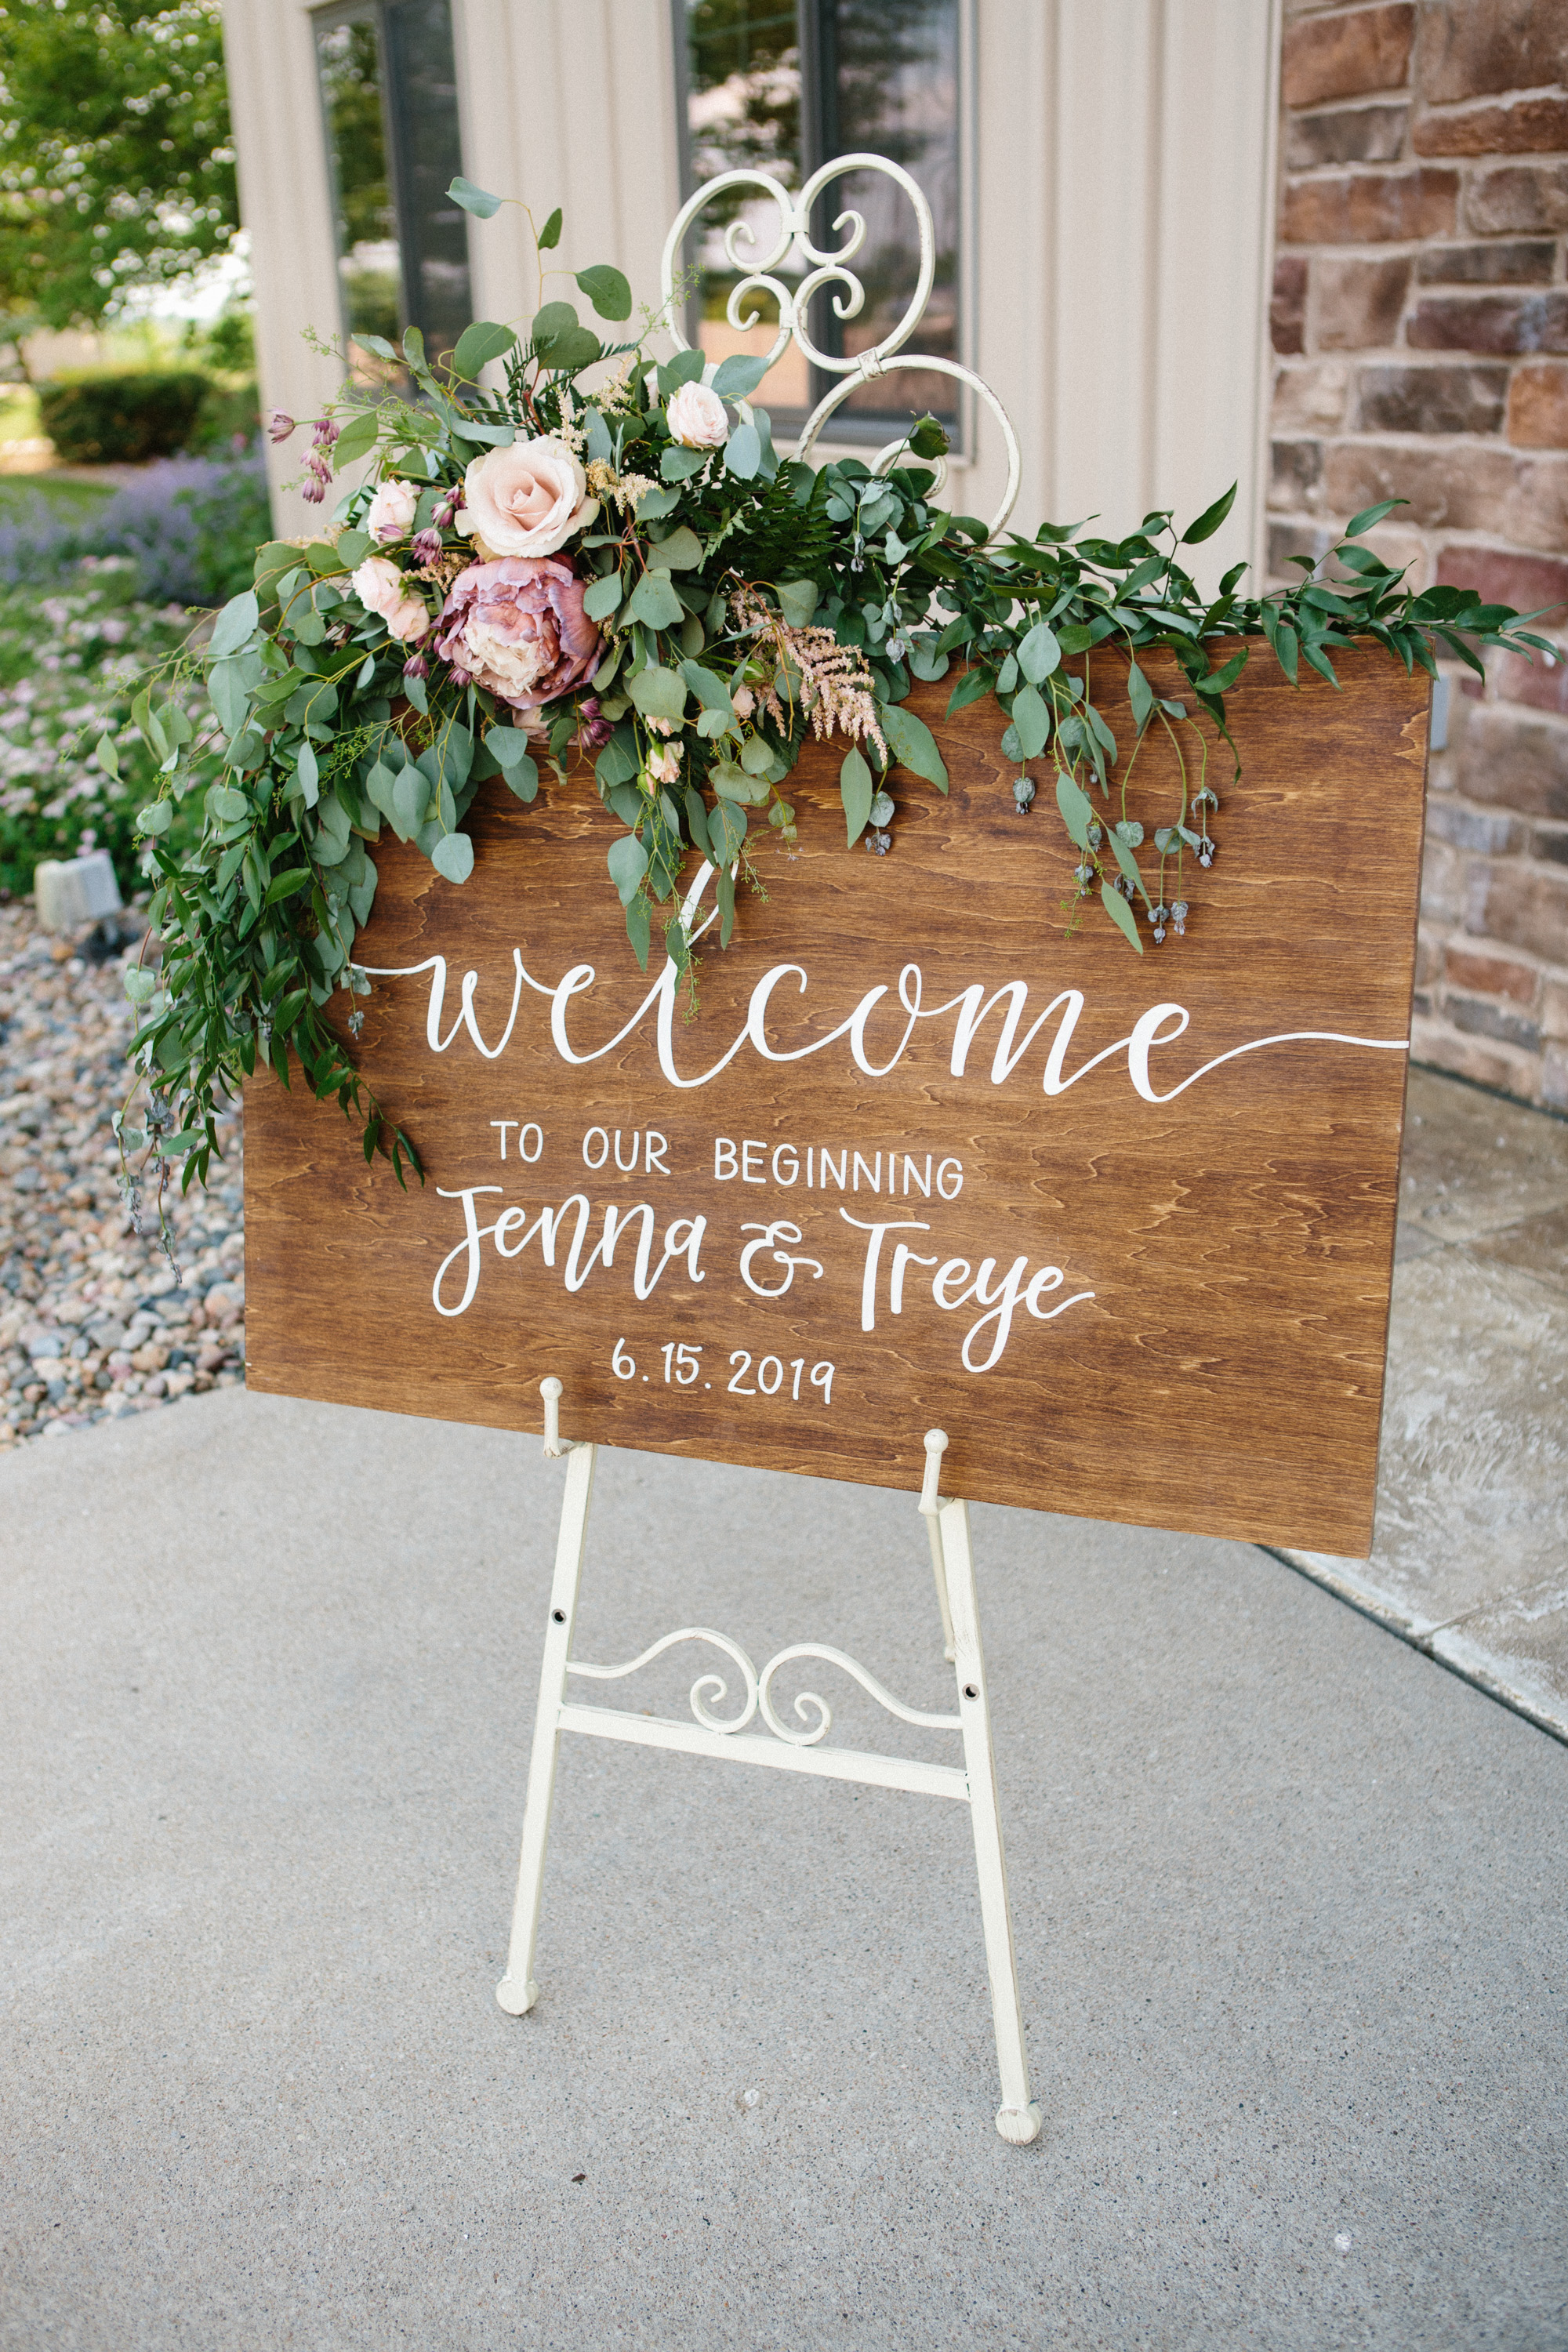 WOOD SIGN for wedding ceremony with flowers on it